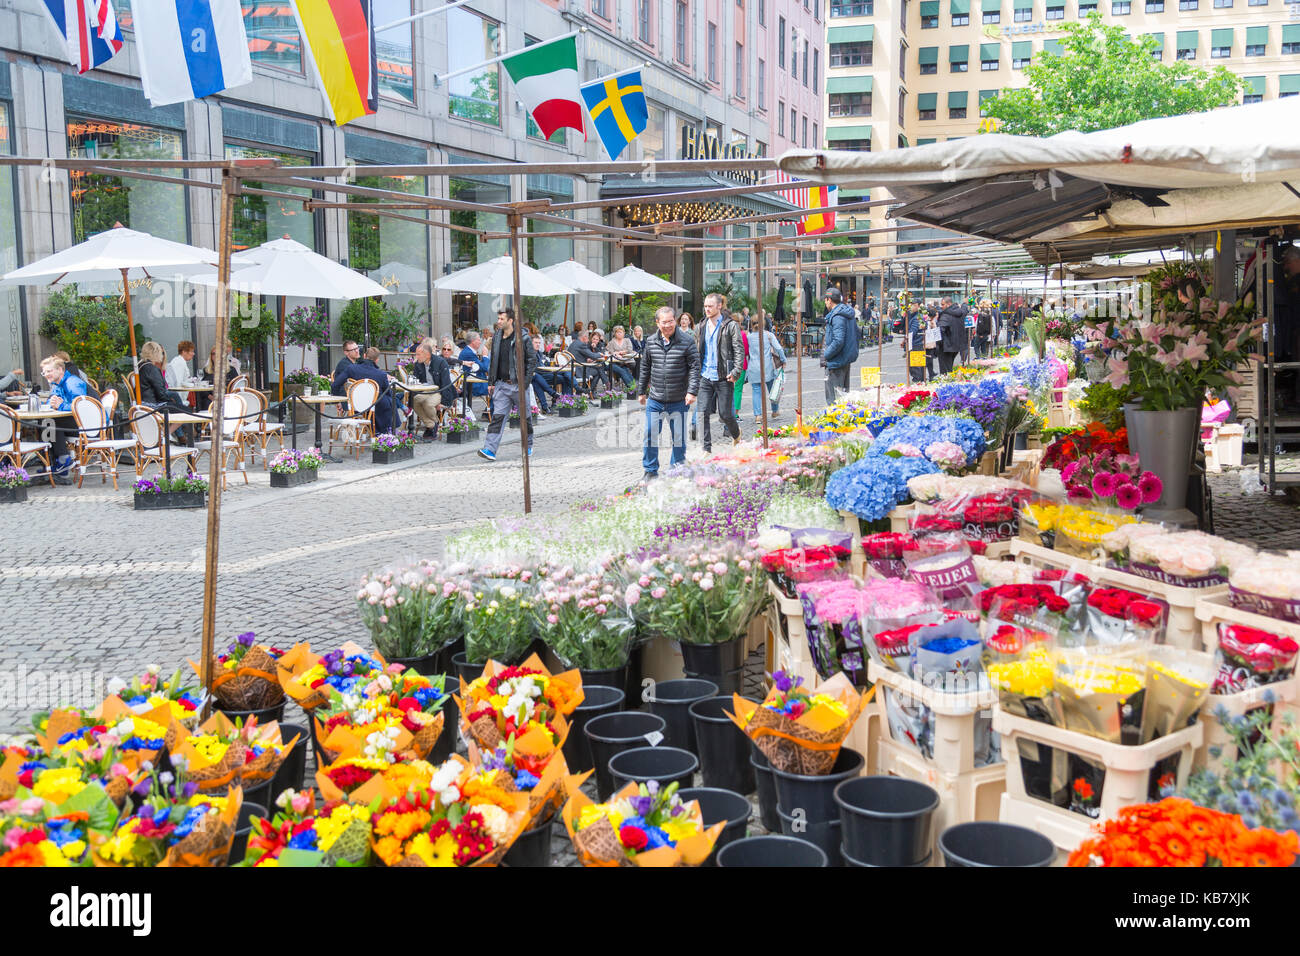 Flower stall and cafe in Hotorget, Stockholm, Sweden, Scandinavia, Europe - Stock Image